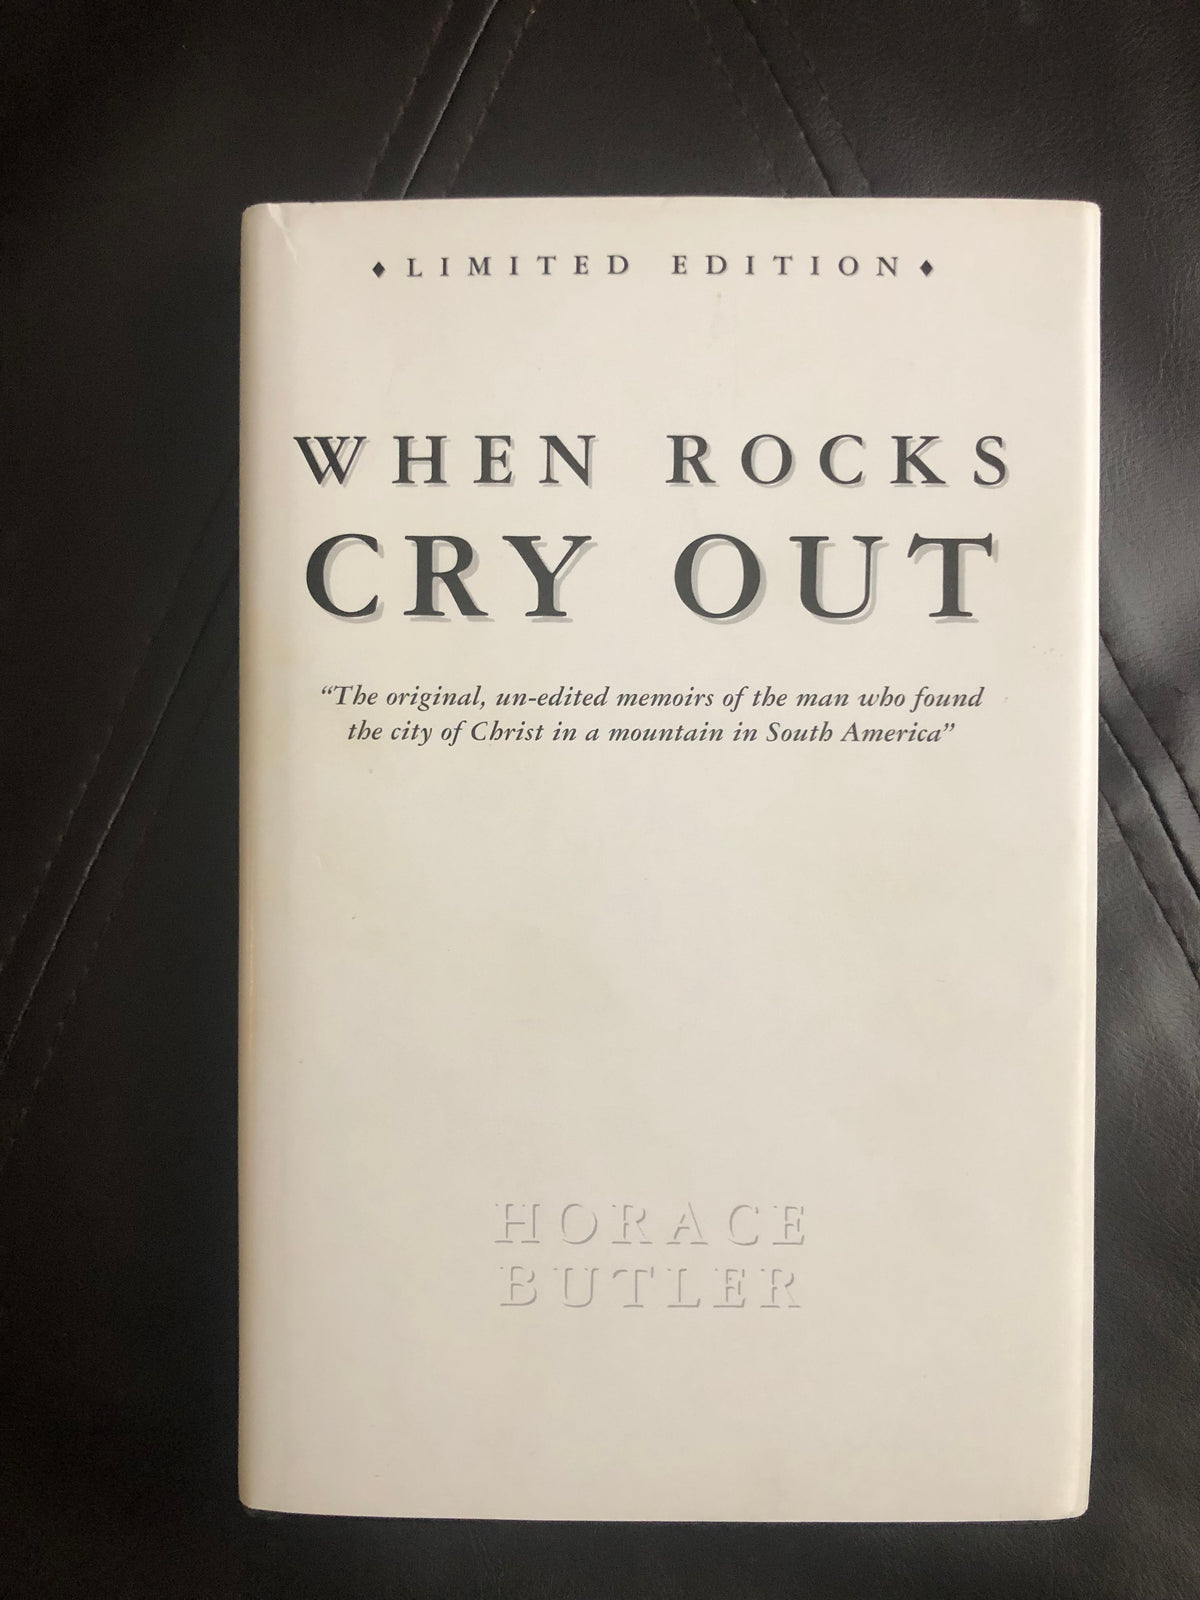 When Rocks Cry Out by Horace Butler (HARDCOVER First Edition!)